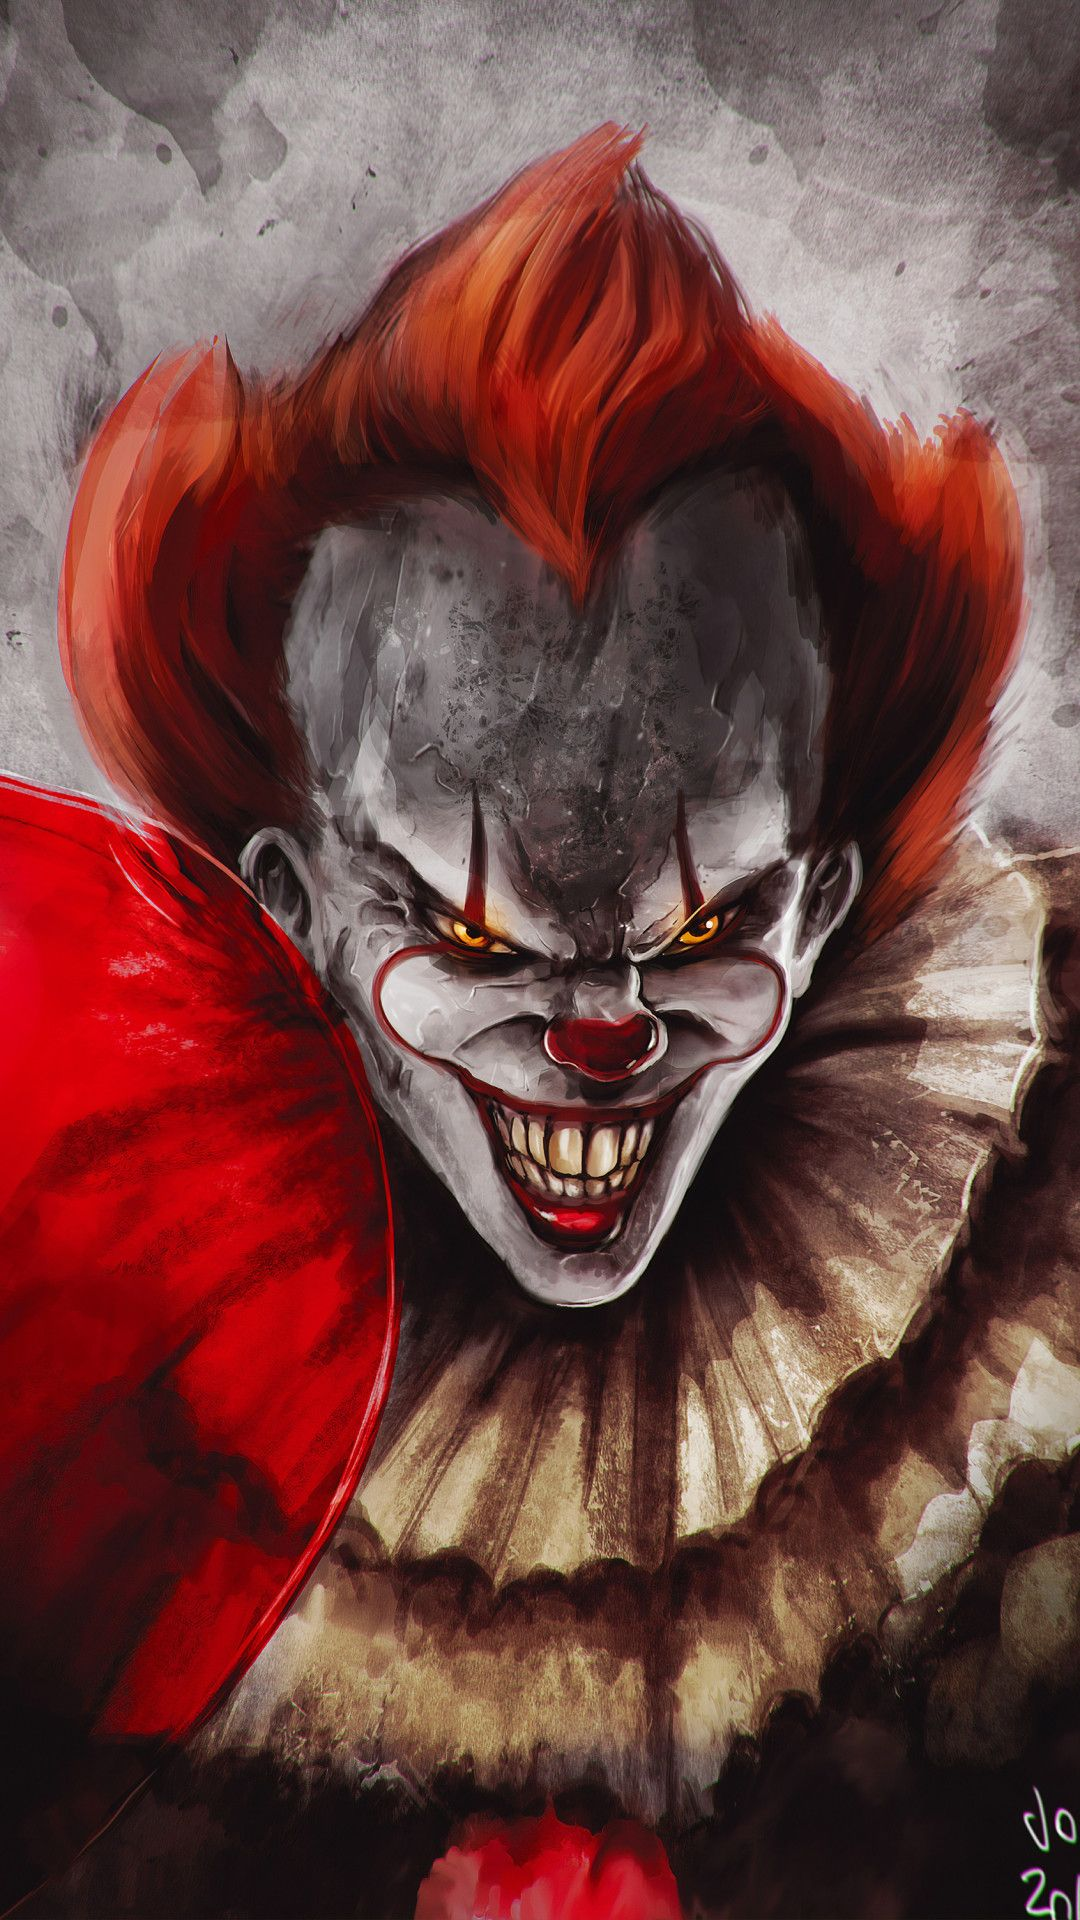 Pennywise Joker Mobile Wallpaper Iphone Android Samsung Pixel Xiaomi In 2020 Joker Mobile Wallpaper Joker Wallpapers Pennywise